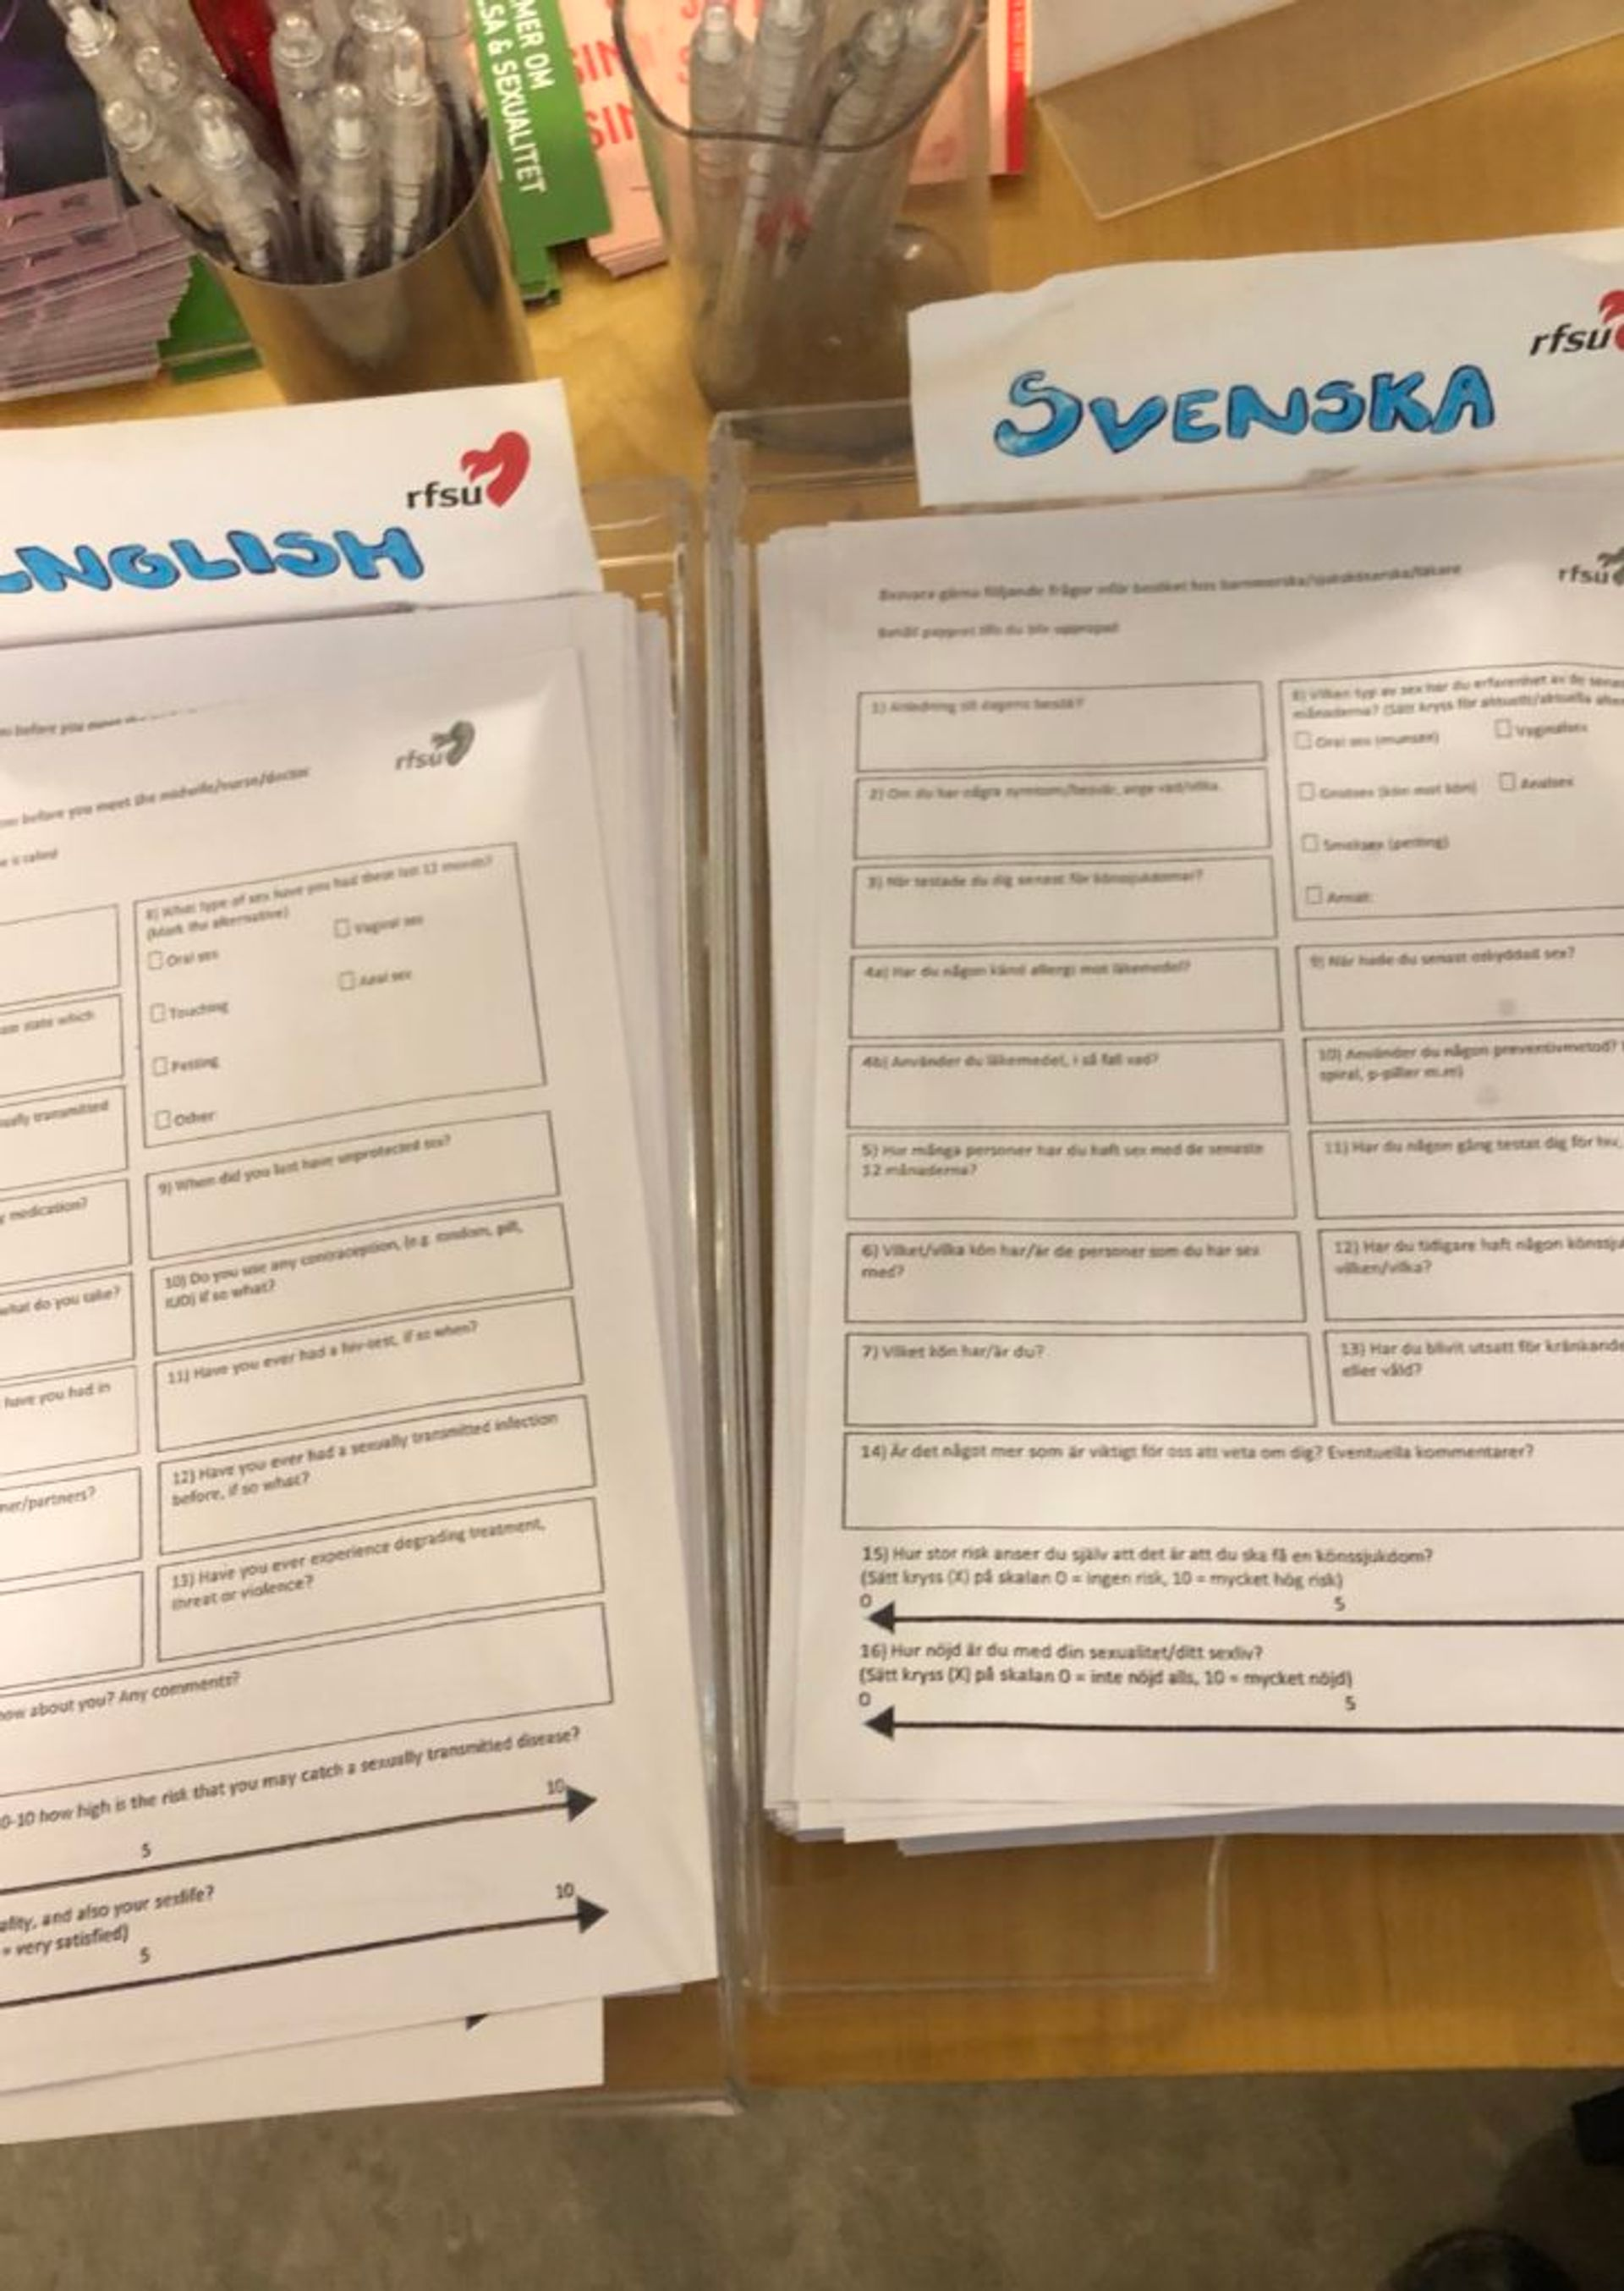 Forms in Swedish and English to fill out when getting an STI test at the organisation RSFU.